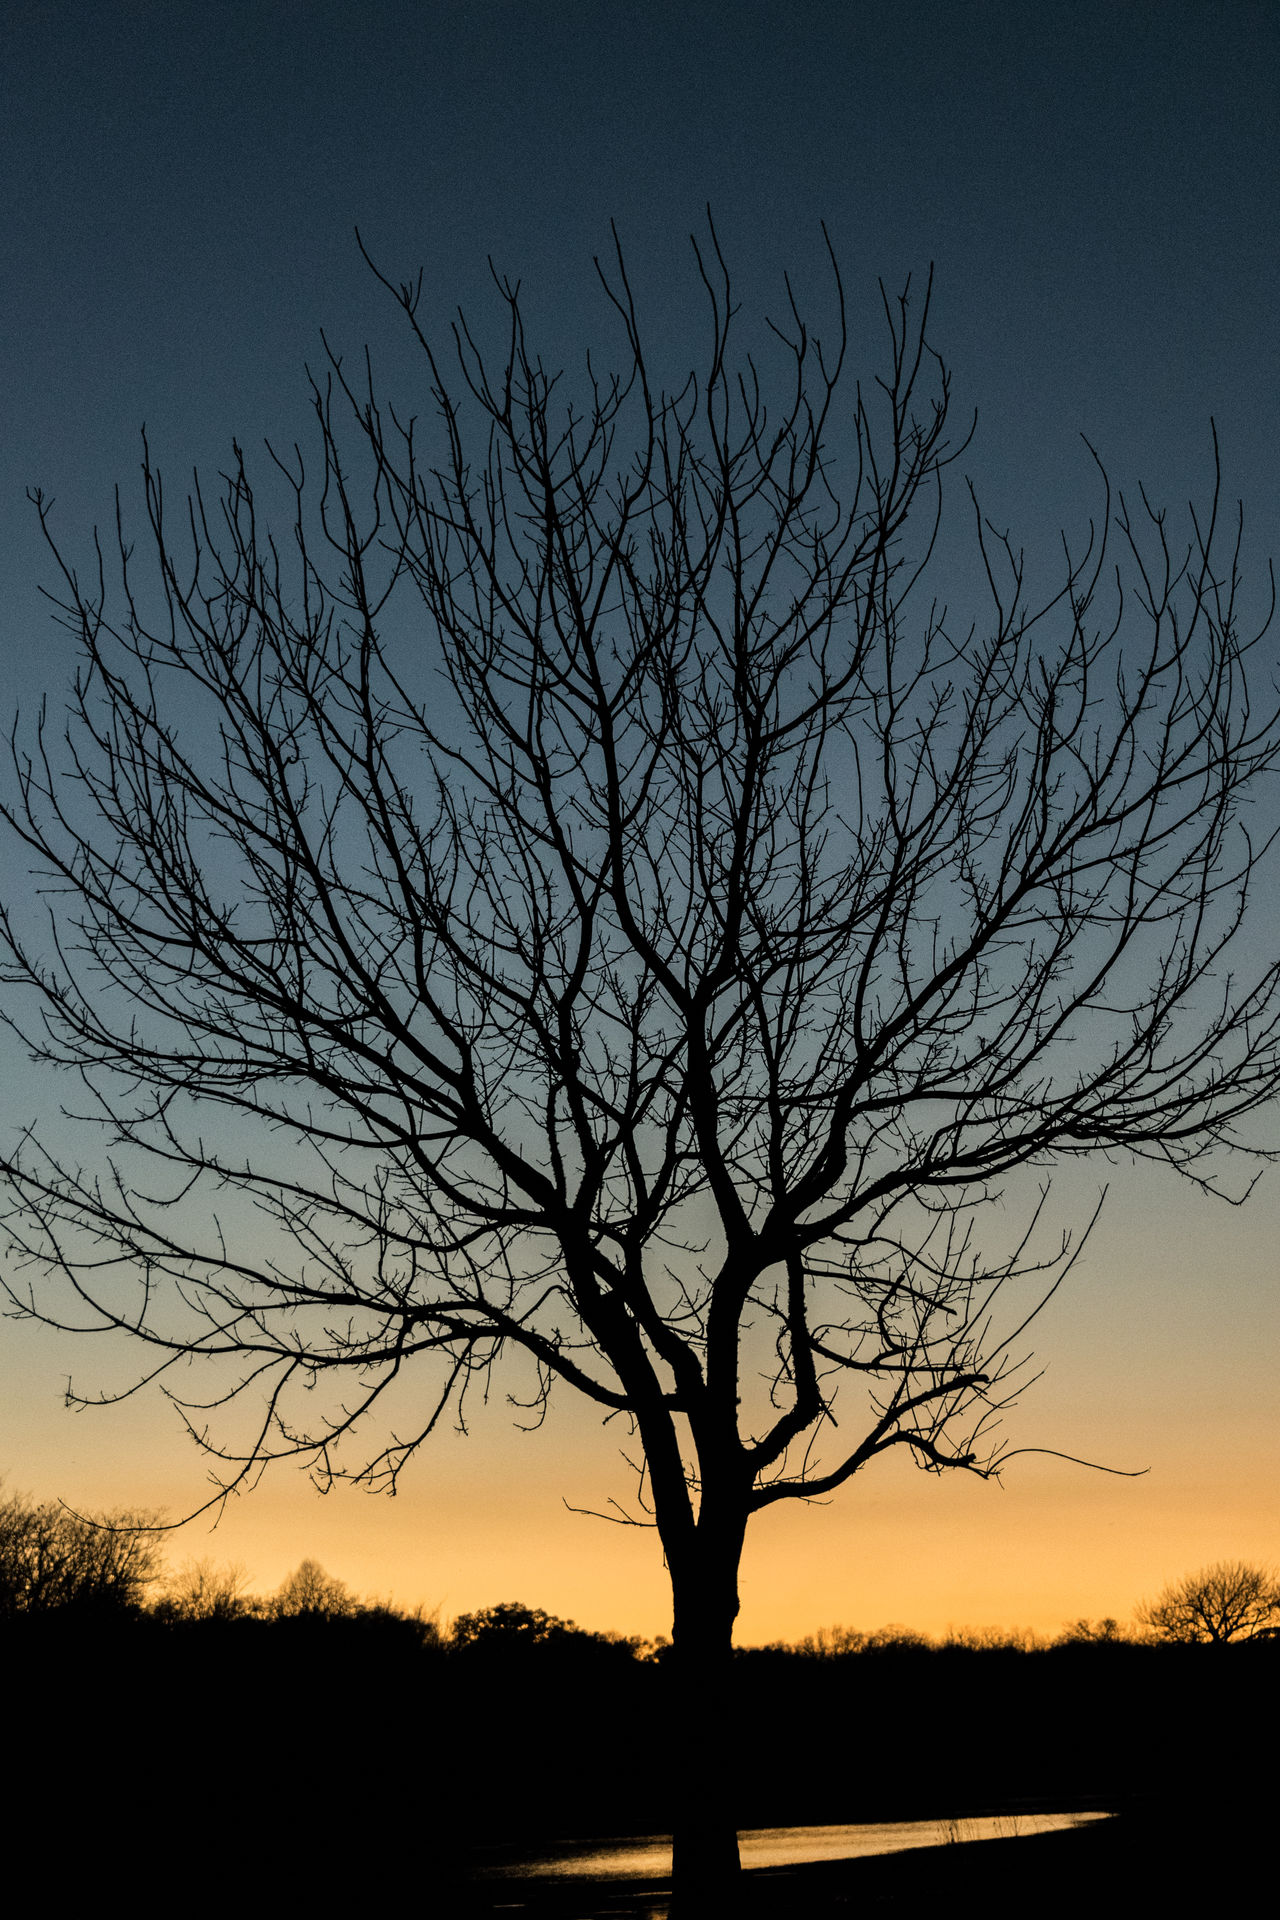 tree at sunset Astronomy Bare Tree Beauty In Nature Branch Day Idyllic Low Angle View Nature No People Outdoors Scenics Silhouette Sky Sunset Sunset Silhouettes Tranquil Scene Tranquility Tree Tree At Dusk